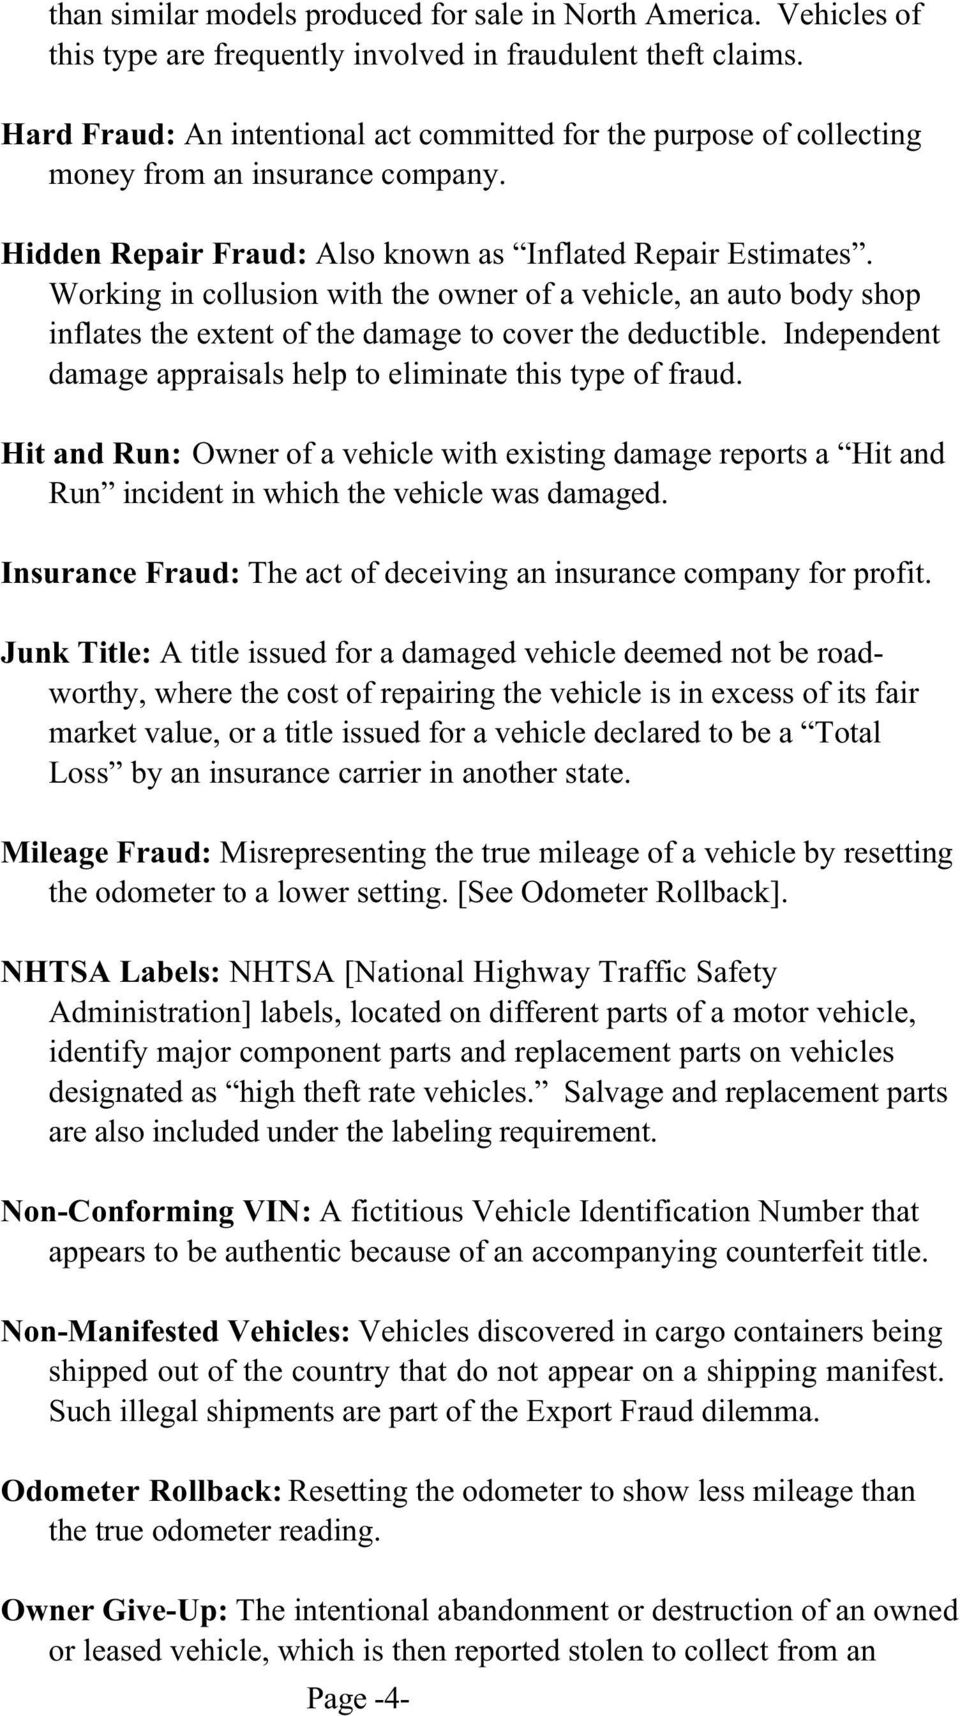 Working in collusion with the owner of a vehicle, an auto body shop inflates the extent of the damage to cover the deductible. Independent damage appraisals help to eliminate this type of fraud.